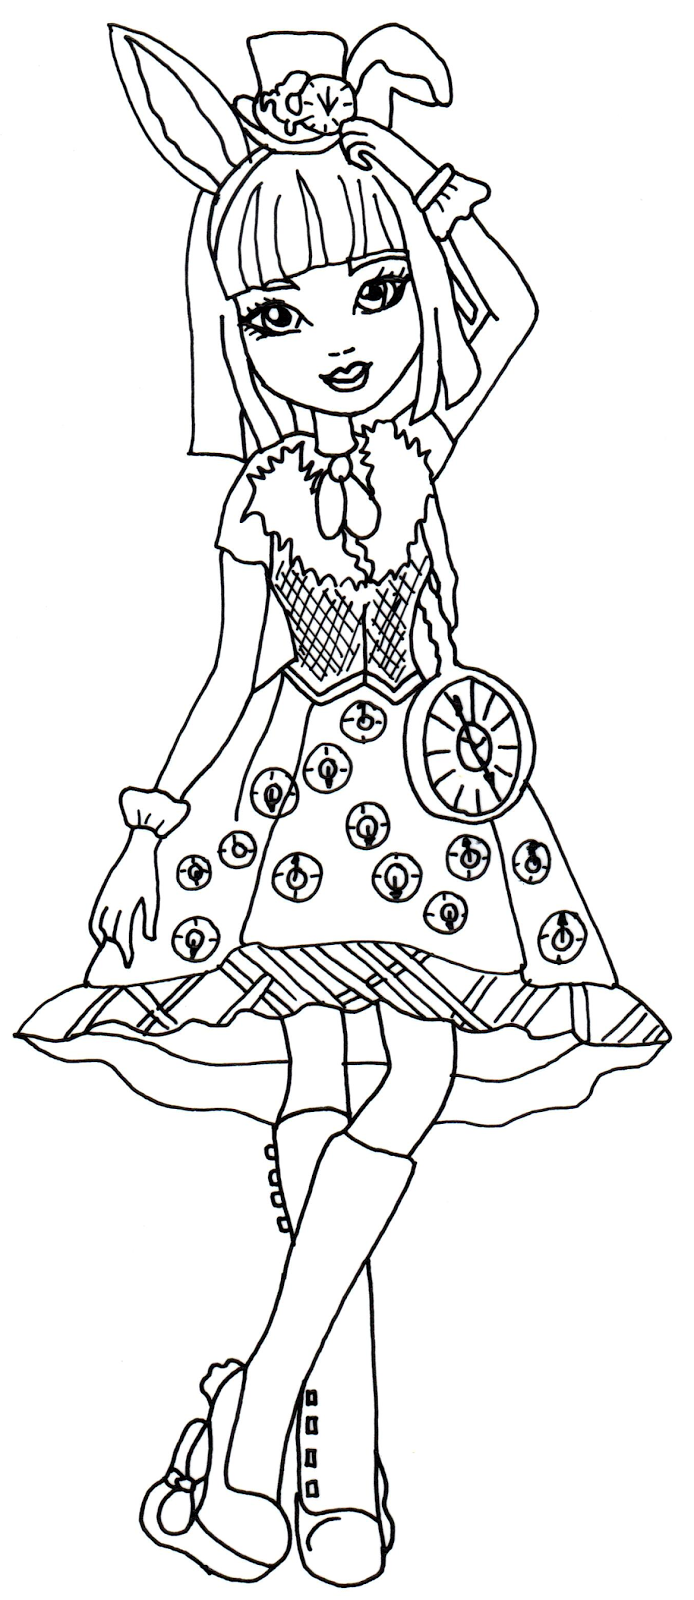 Printable coloring pages bunnies - Free Printable Ever After High Coloring Pages Bunny Blanc